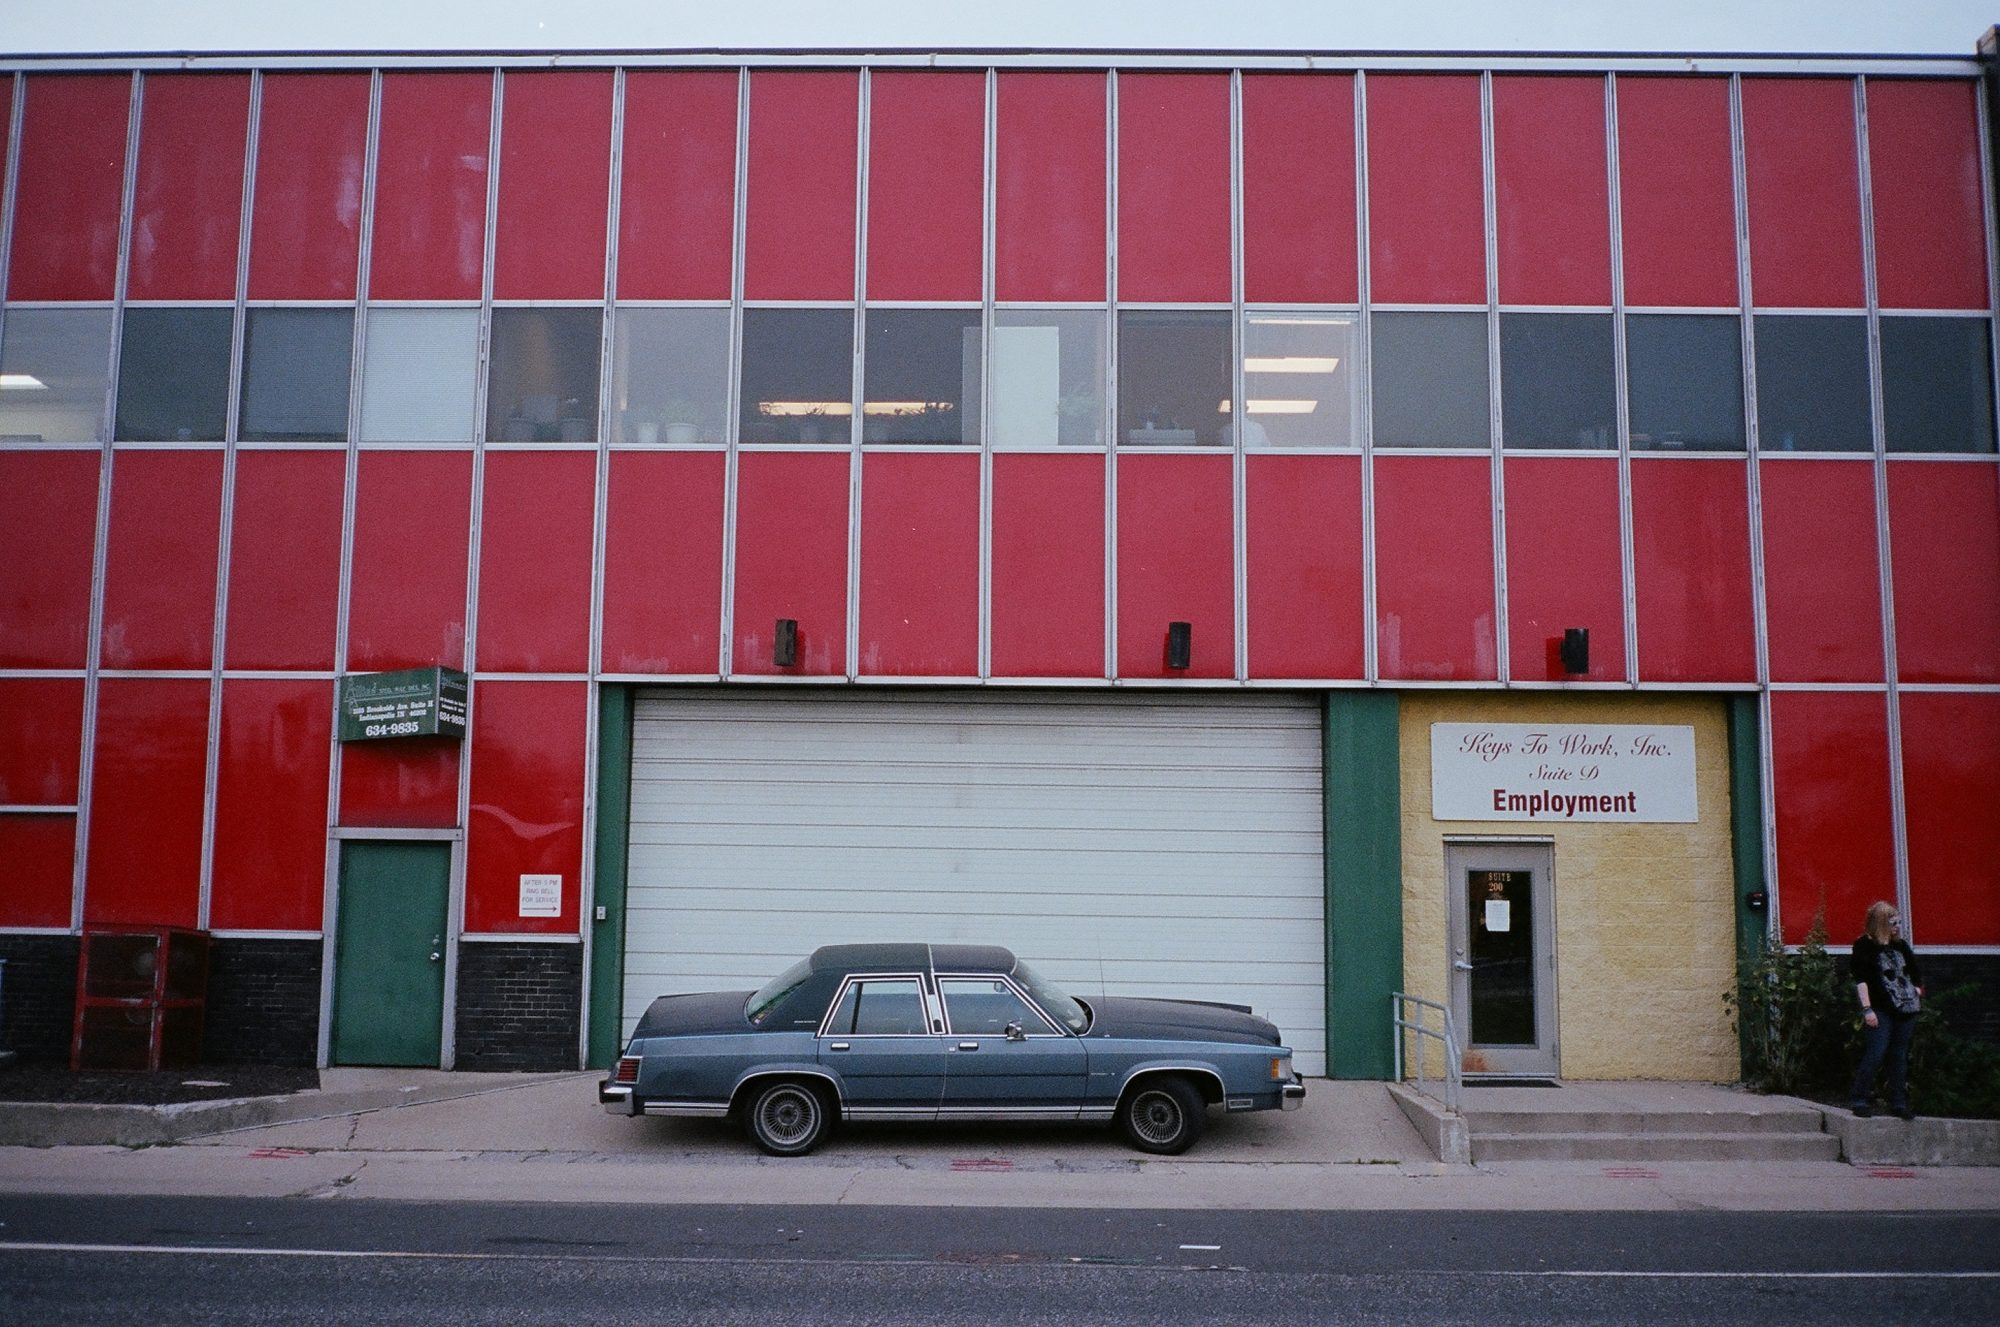 Blue car, red wall. Indianapolis, 2013